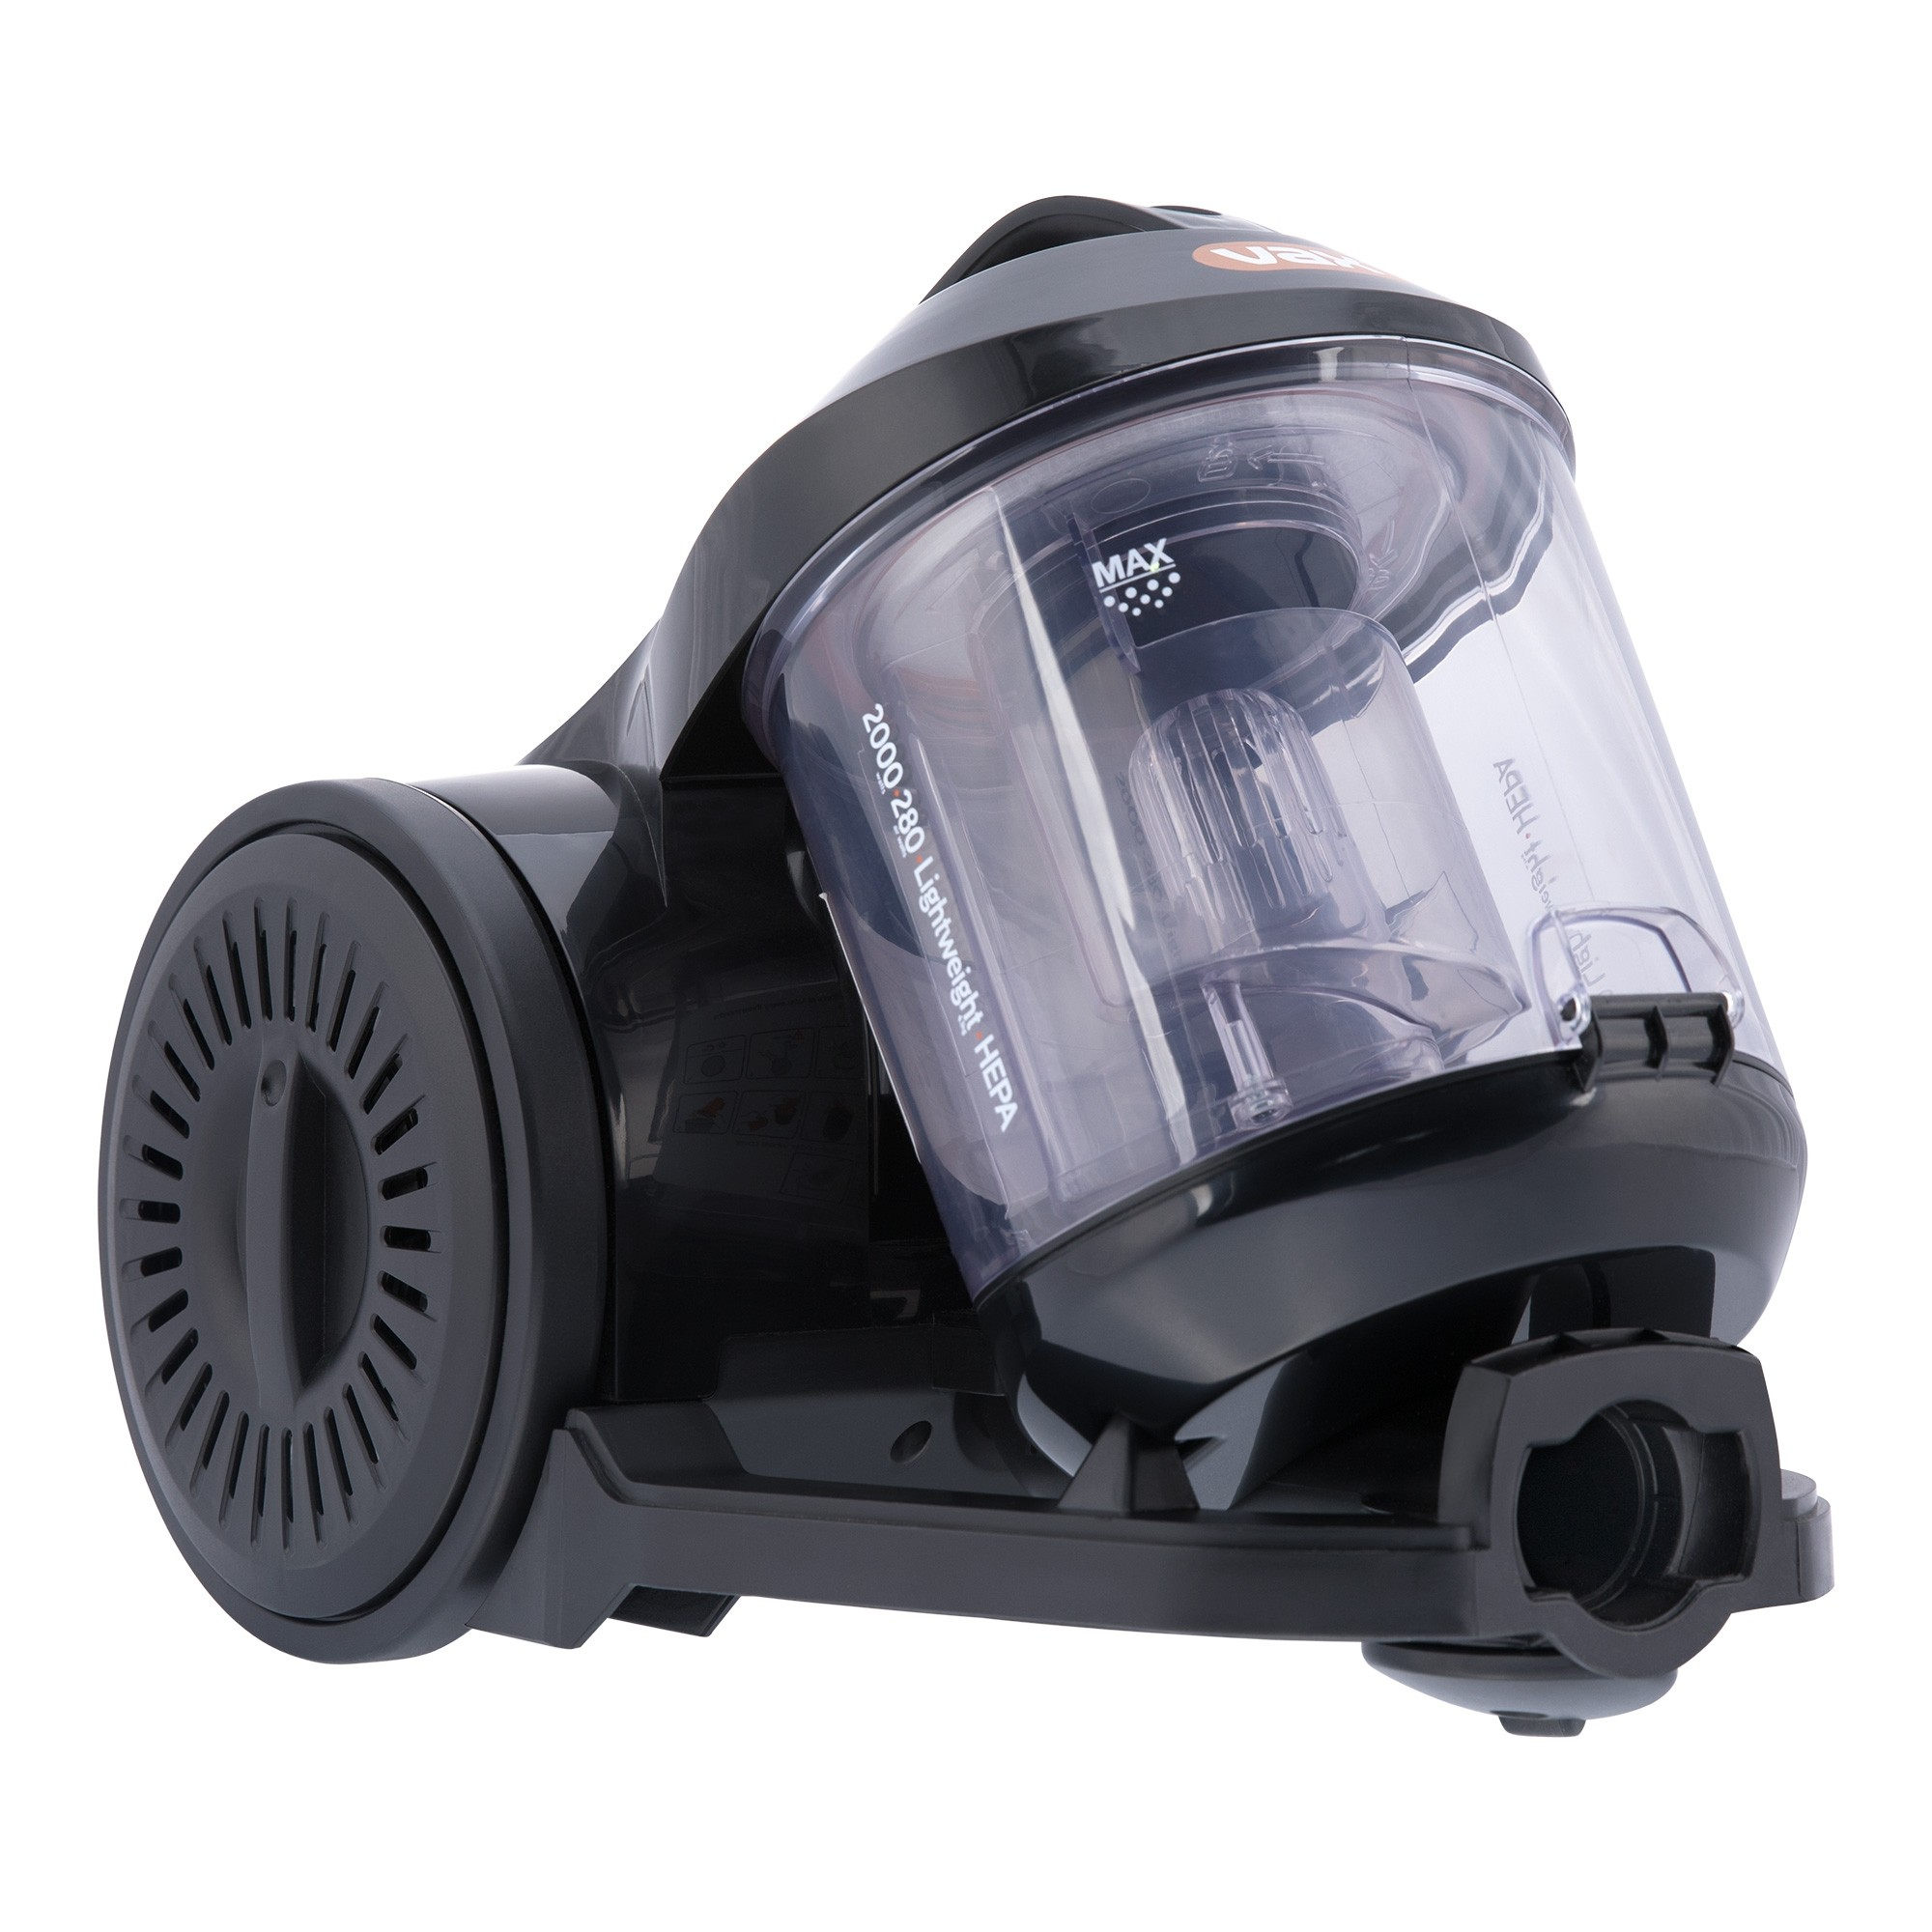 Vax Black Edition Barrel Vacuum Cleaner